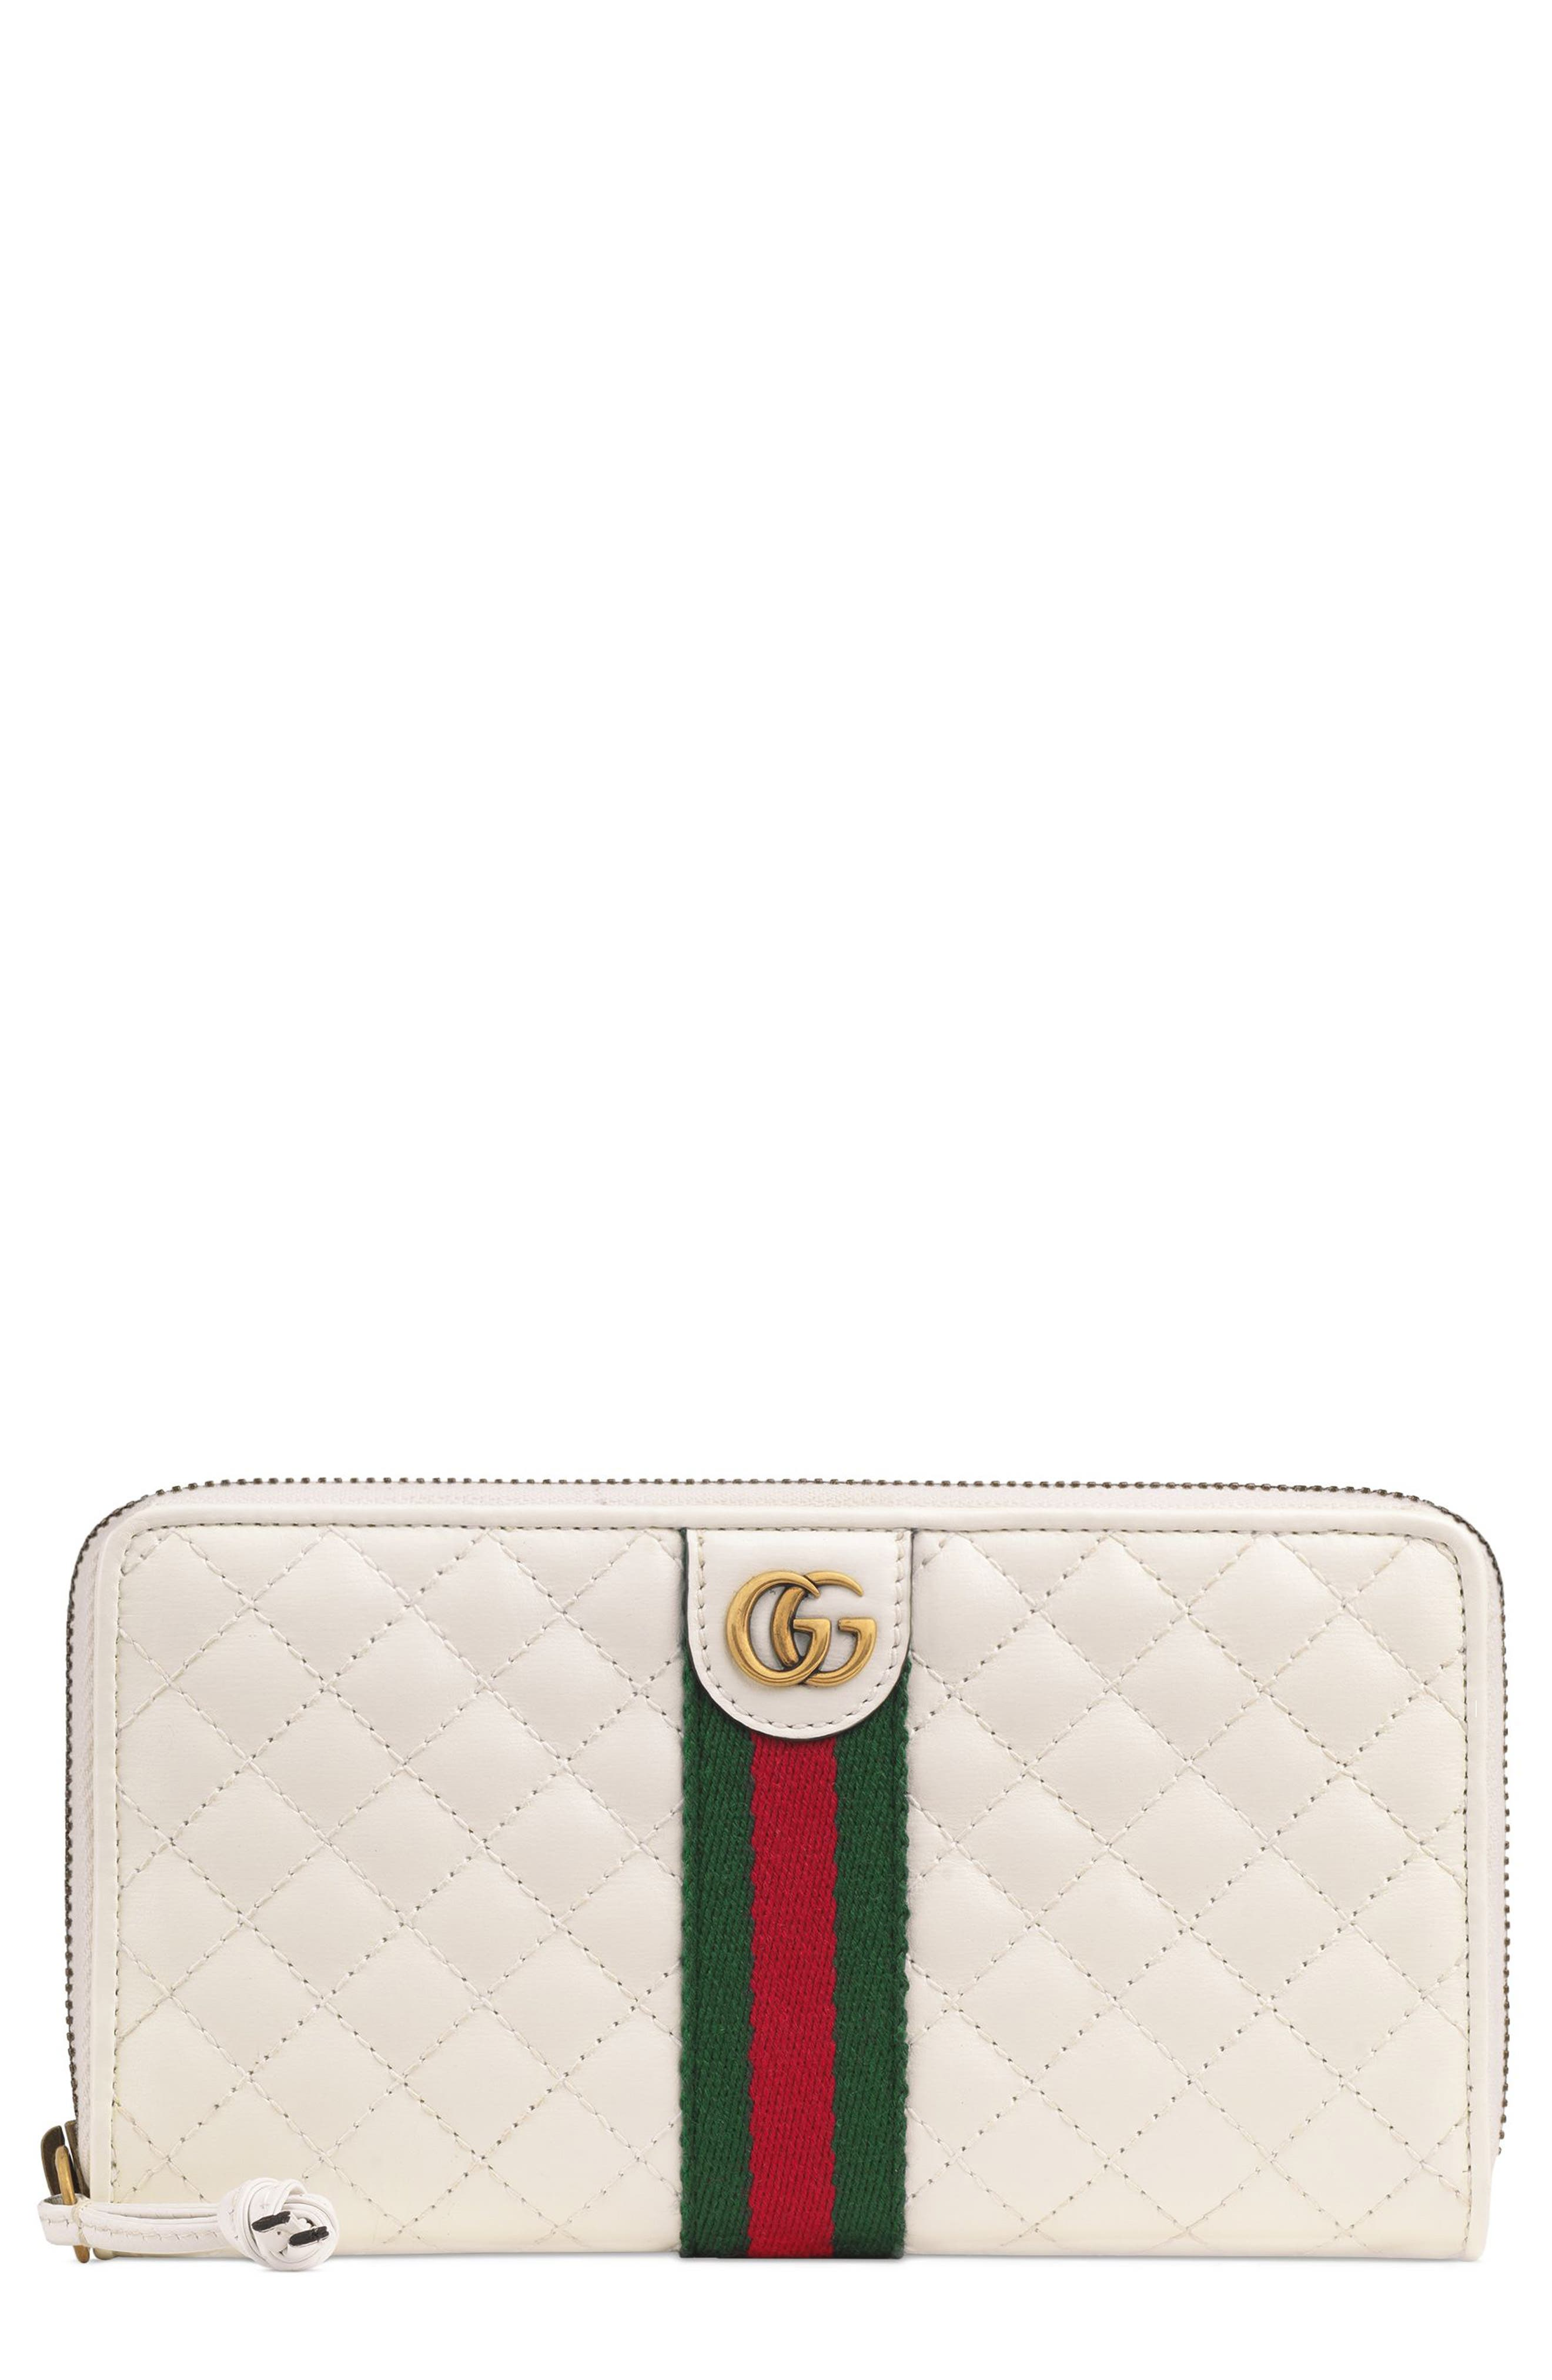 Quilted Leather Zip Around Continental Wallet,                         Main,                         color, OFF WHITE/ VERT/ RED